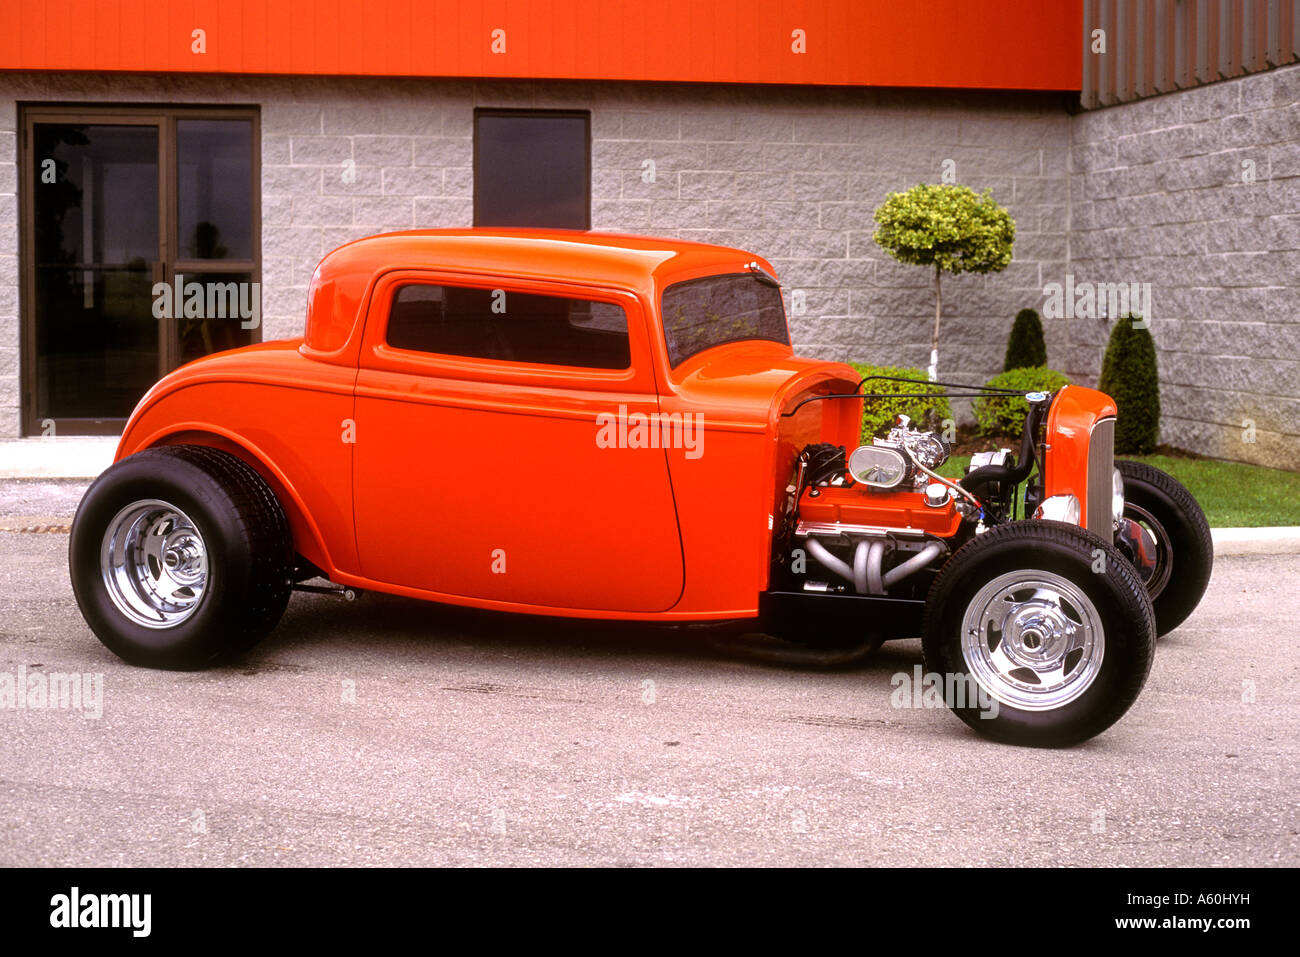 Ford Coupe Hot Rod Stock Photos & Ford Coupe Hot Rod Stock Images ...